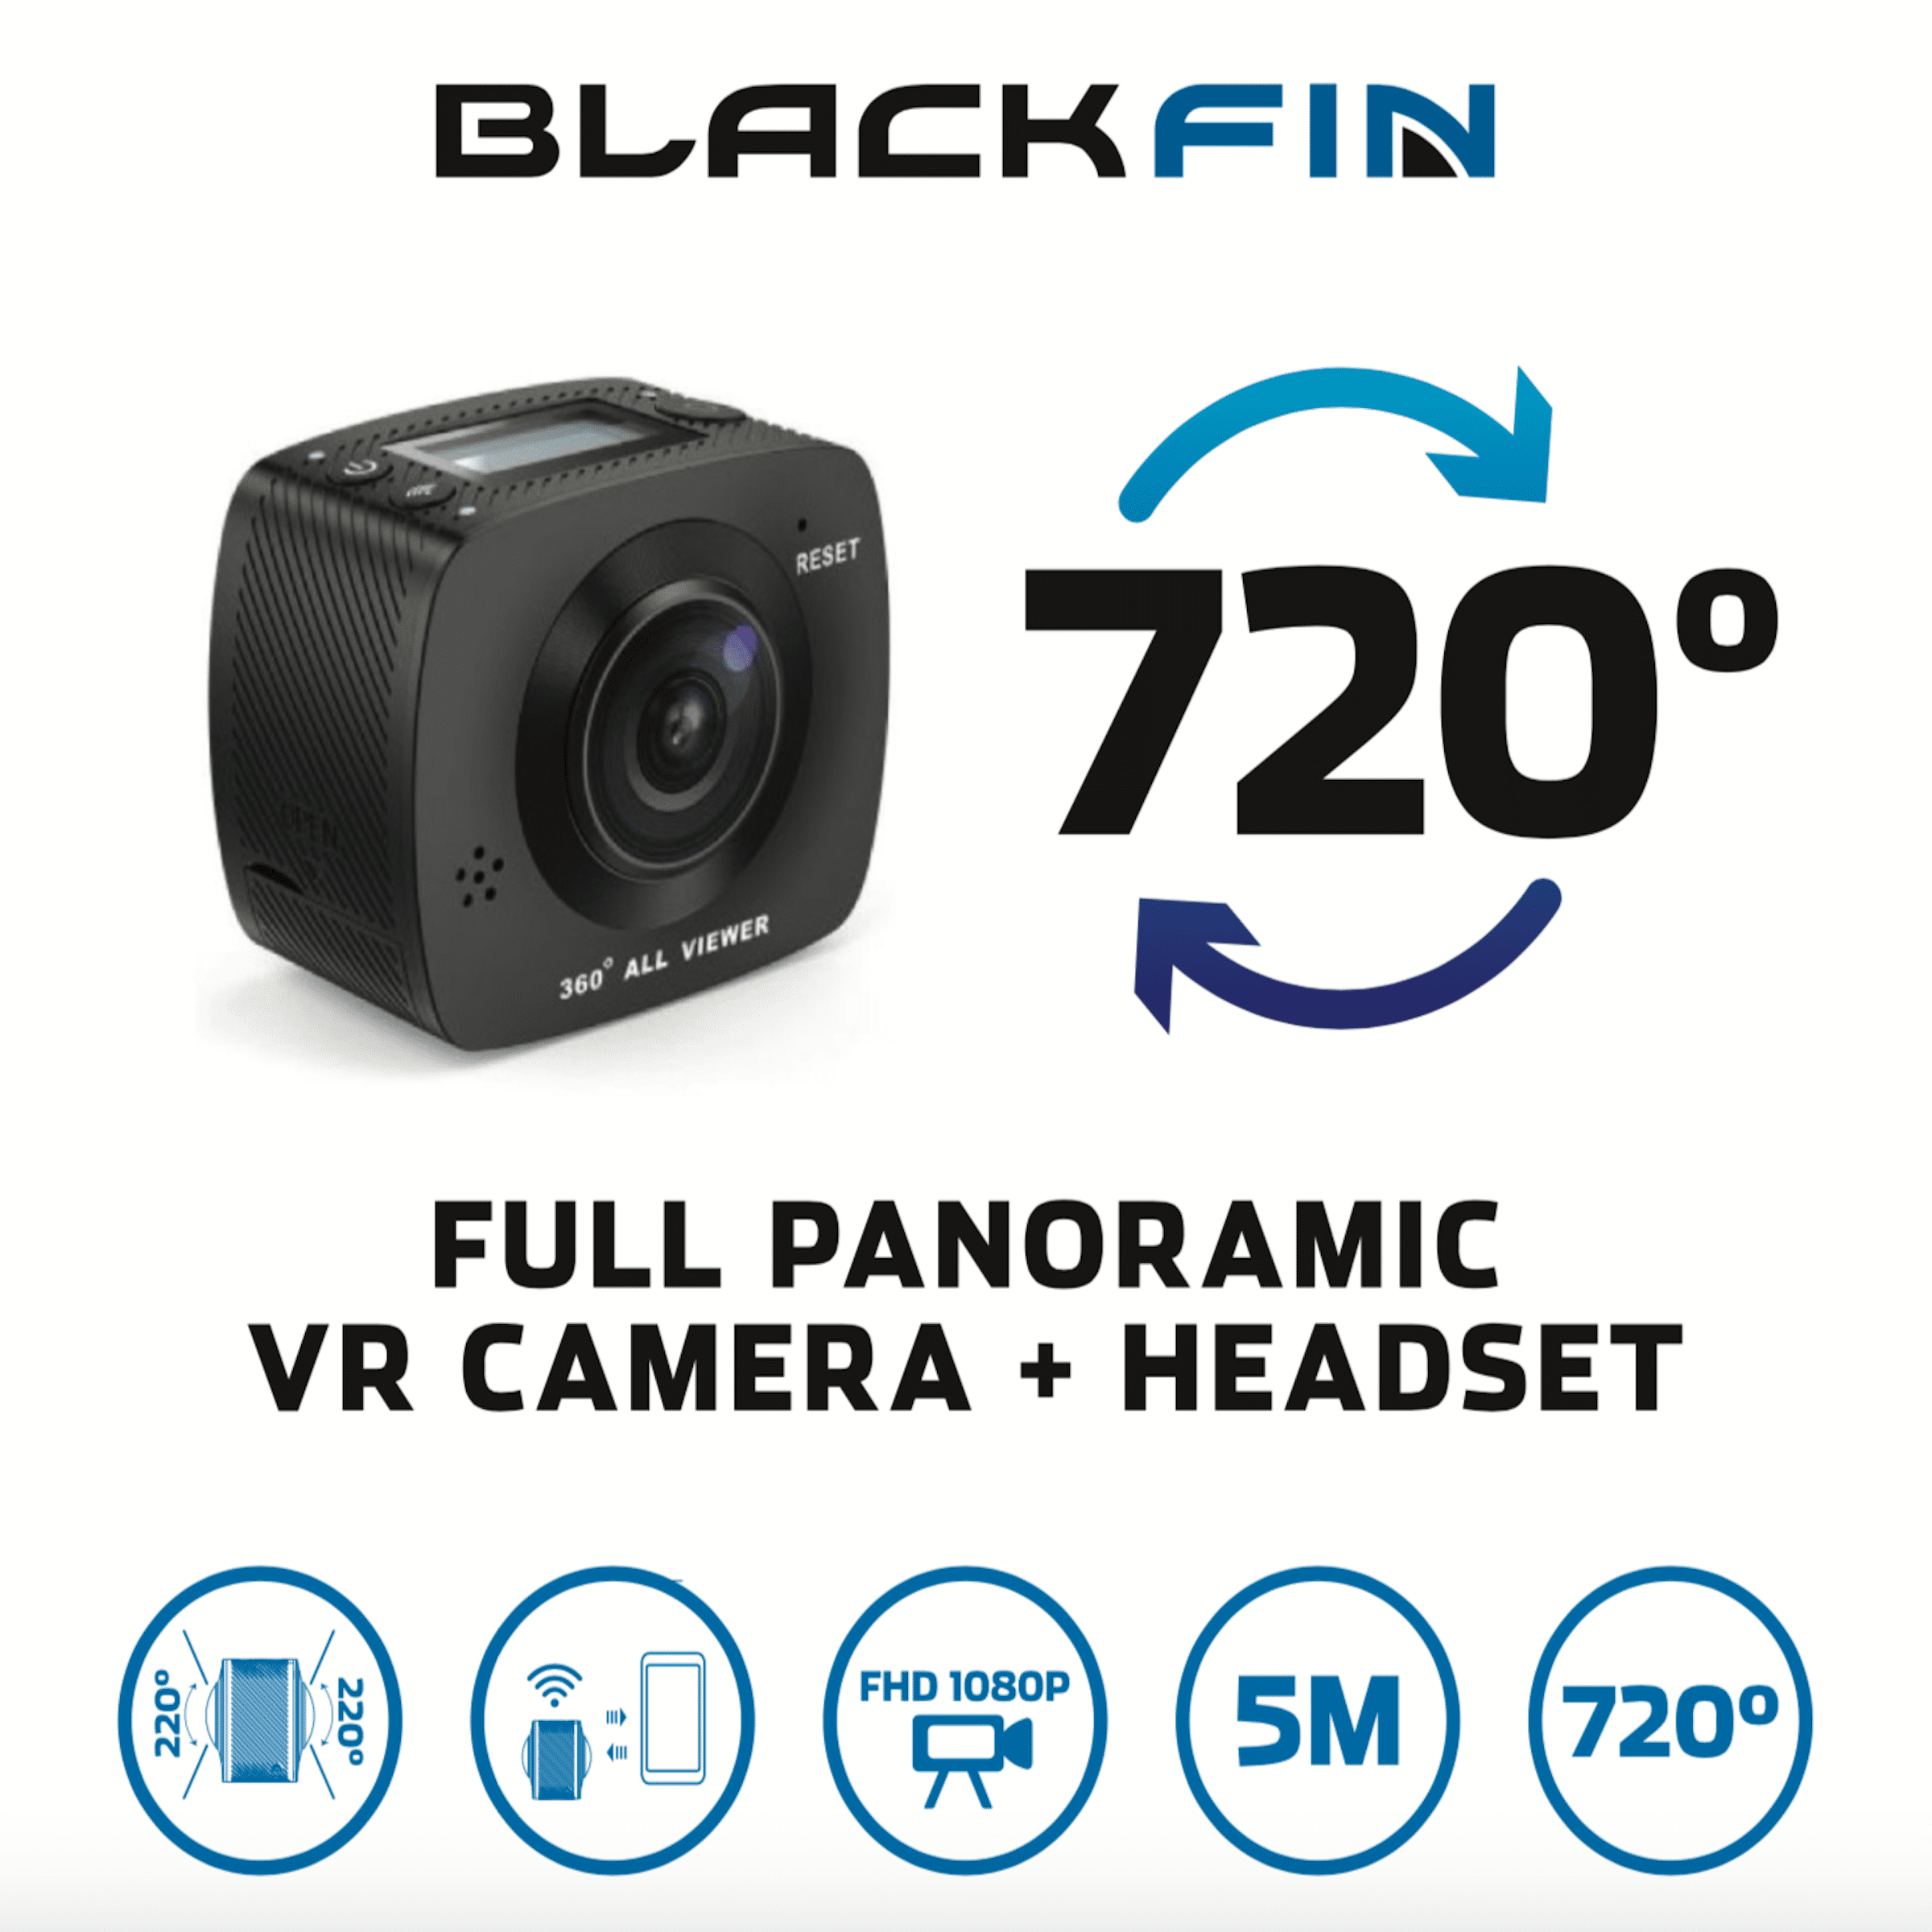 720 VR ACTION CAMERA & HEADSET by Black Fin® - Walmart com